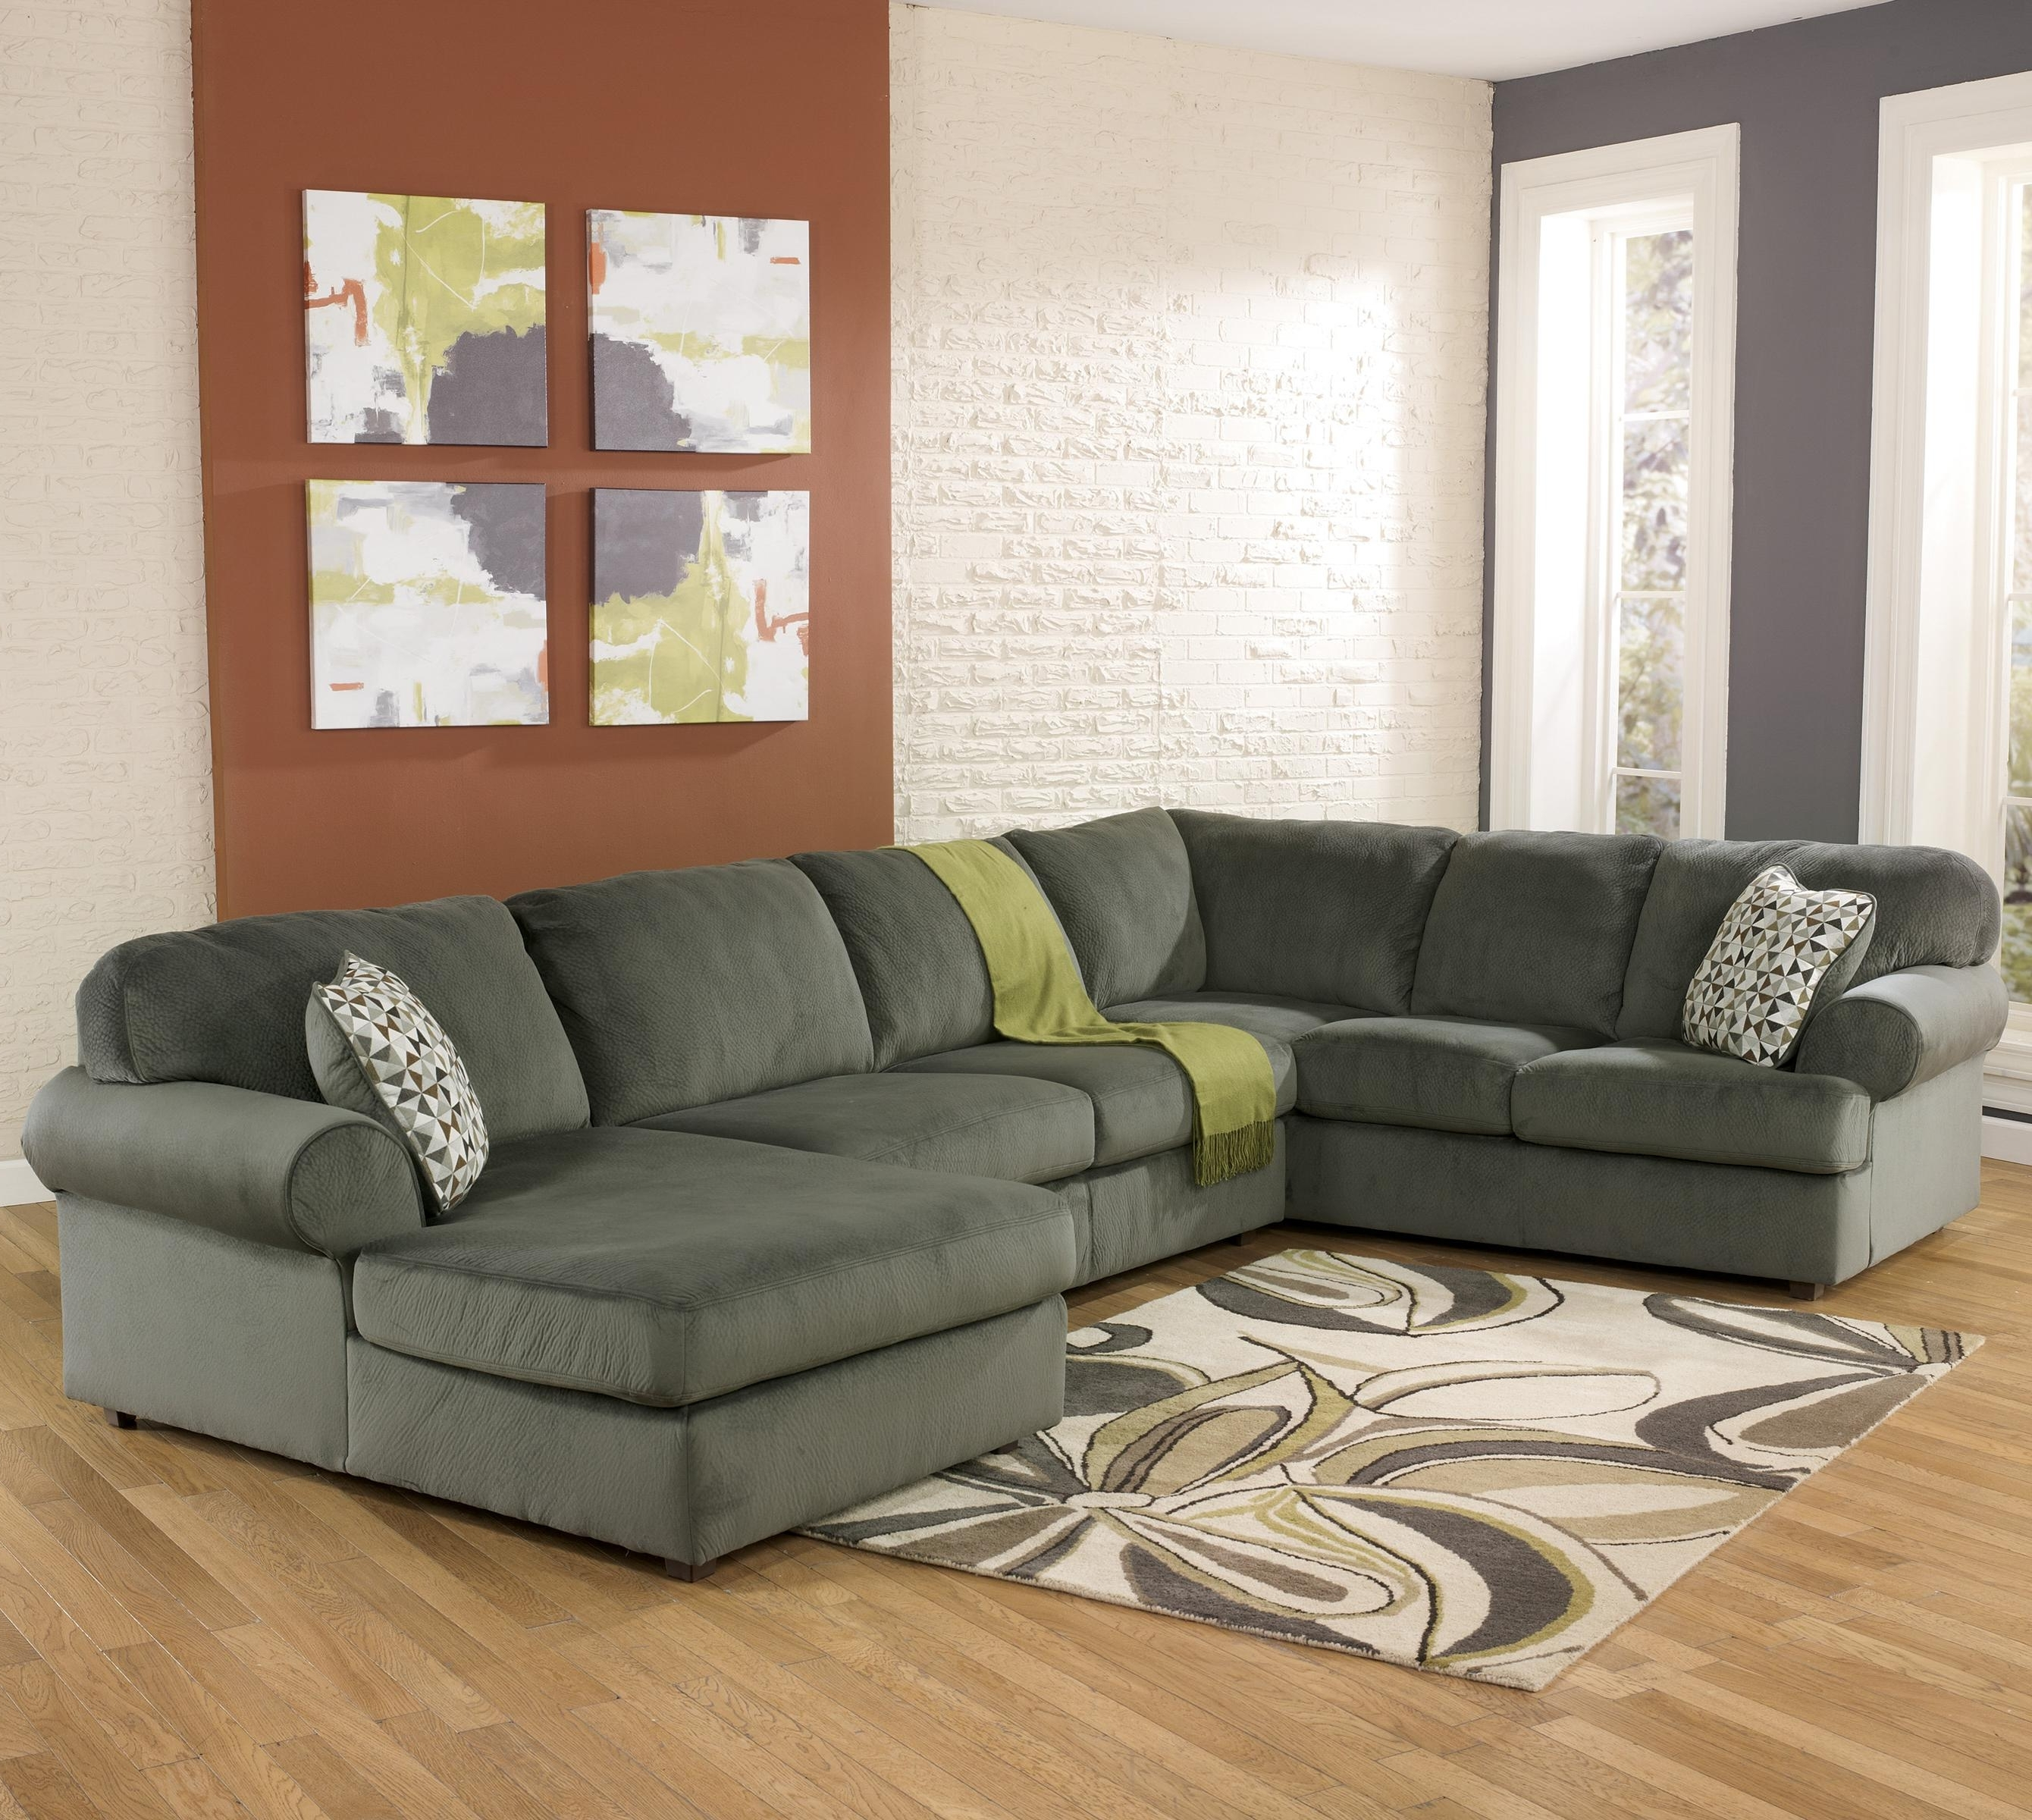 Best And Newest Signature Designashley Jessa Place – Pewter Casual Sectional Intended For Sectional Sofas In North Carolina (View 18 of 20)